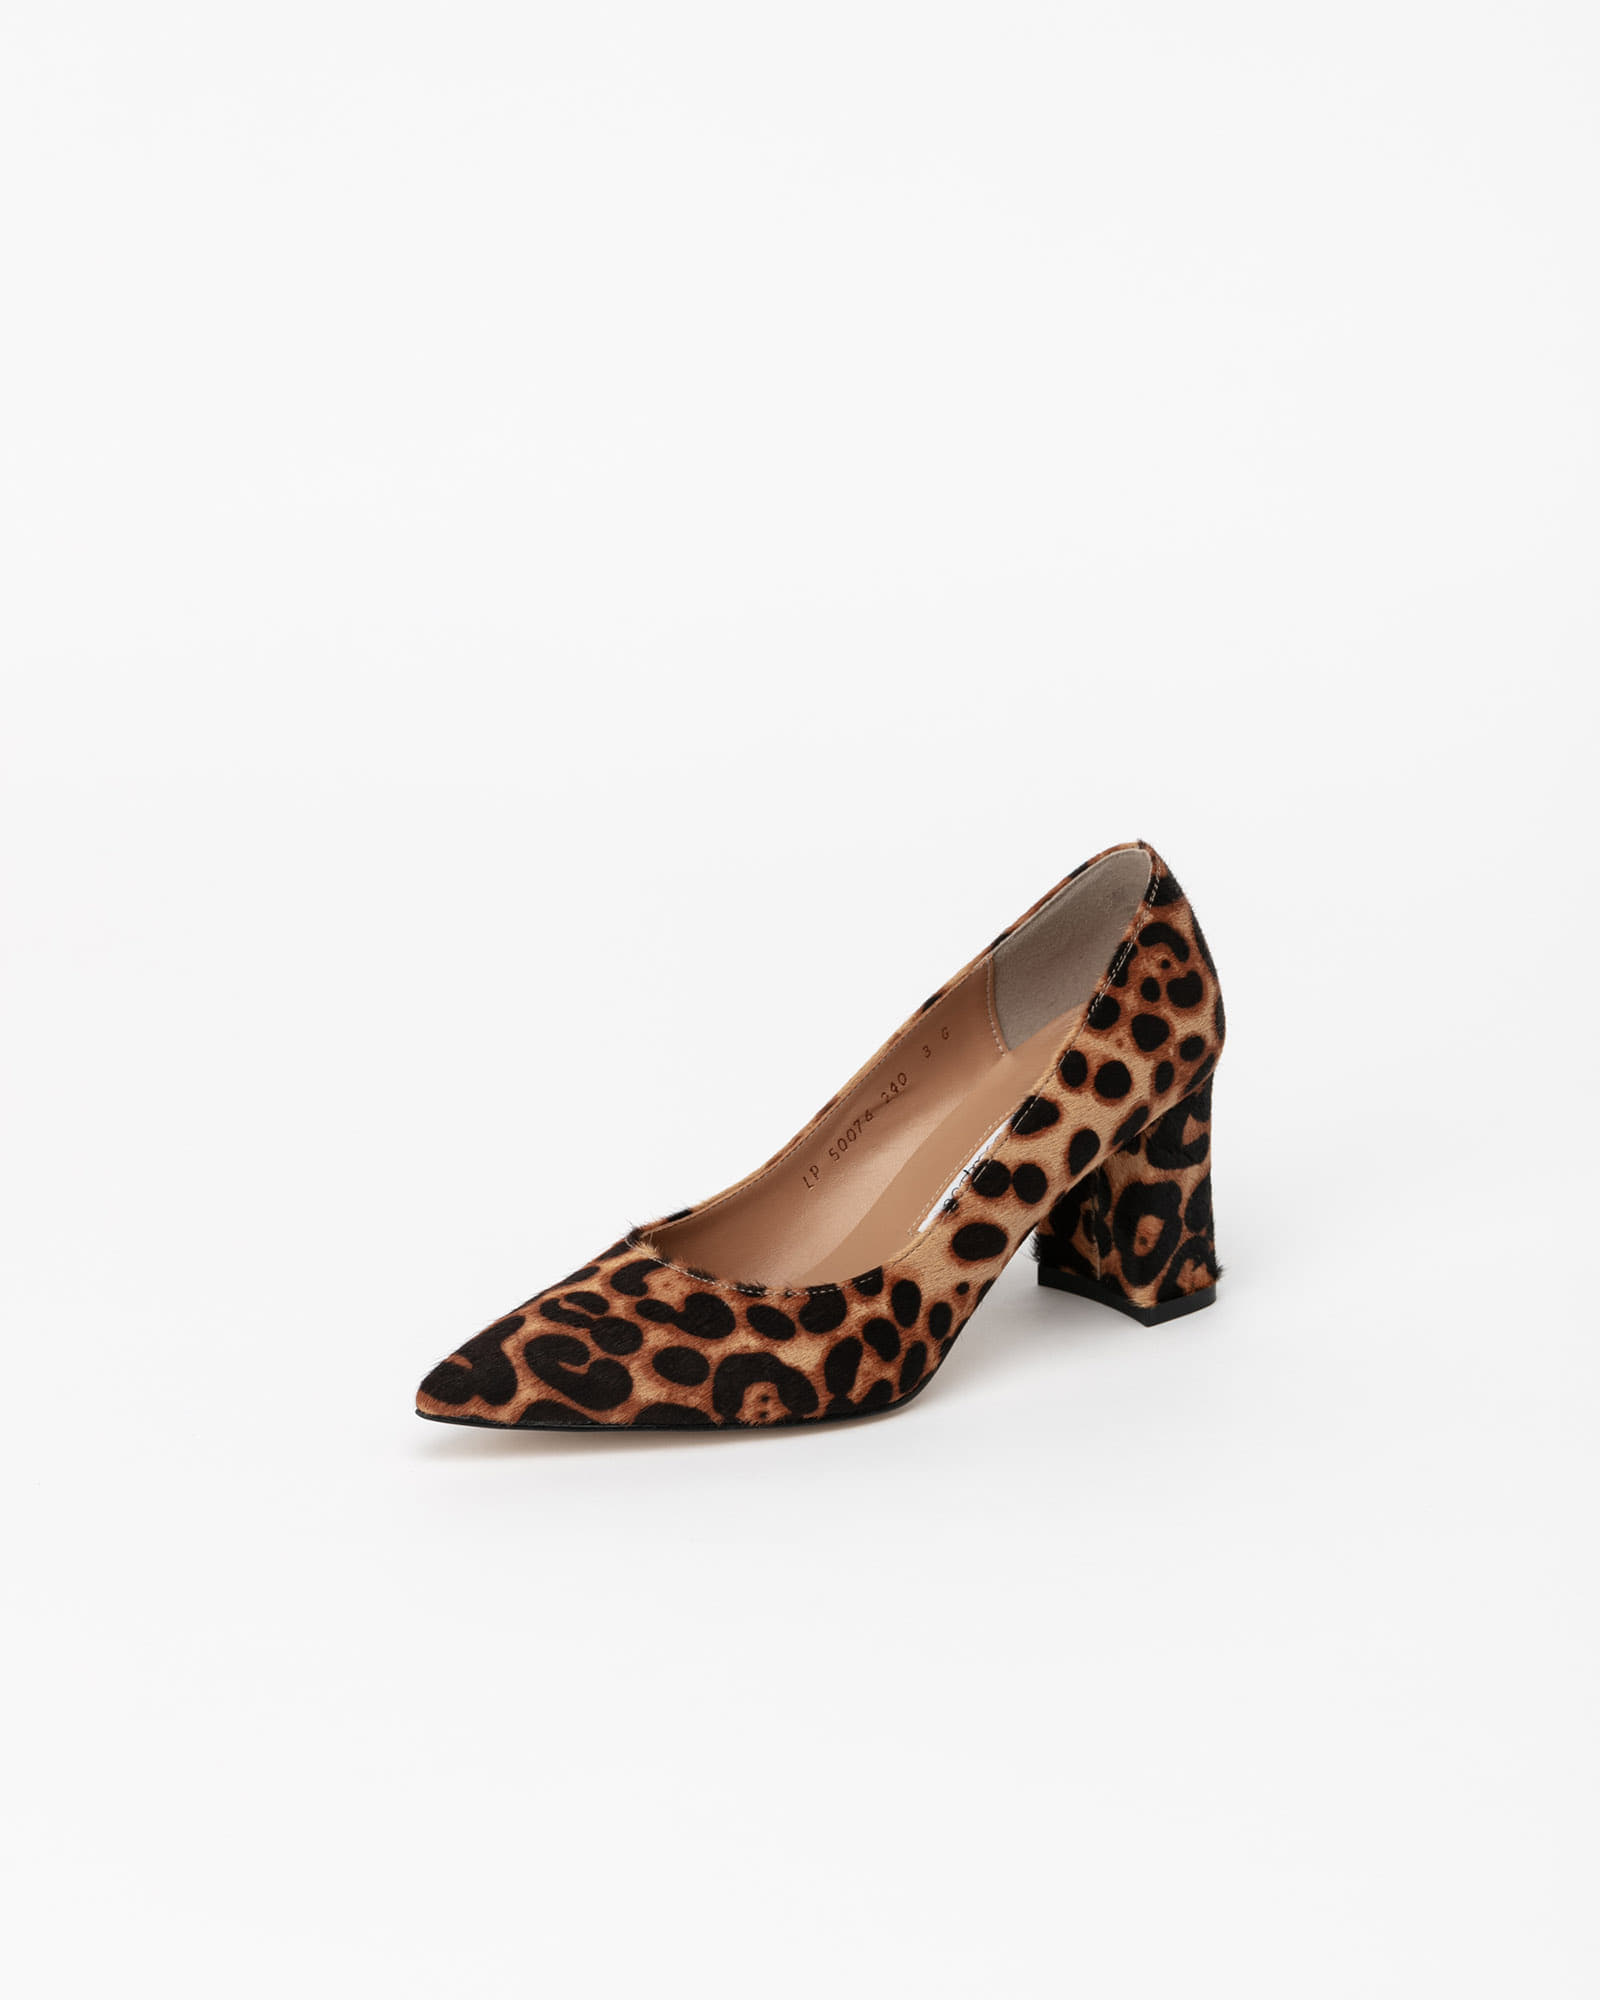 Naff Pumps in Leopard Print Hair